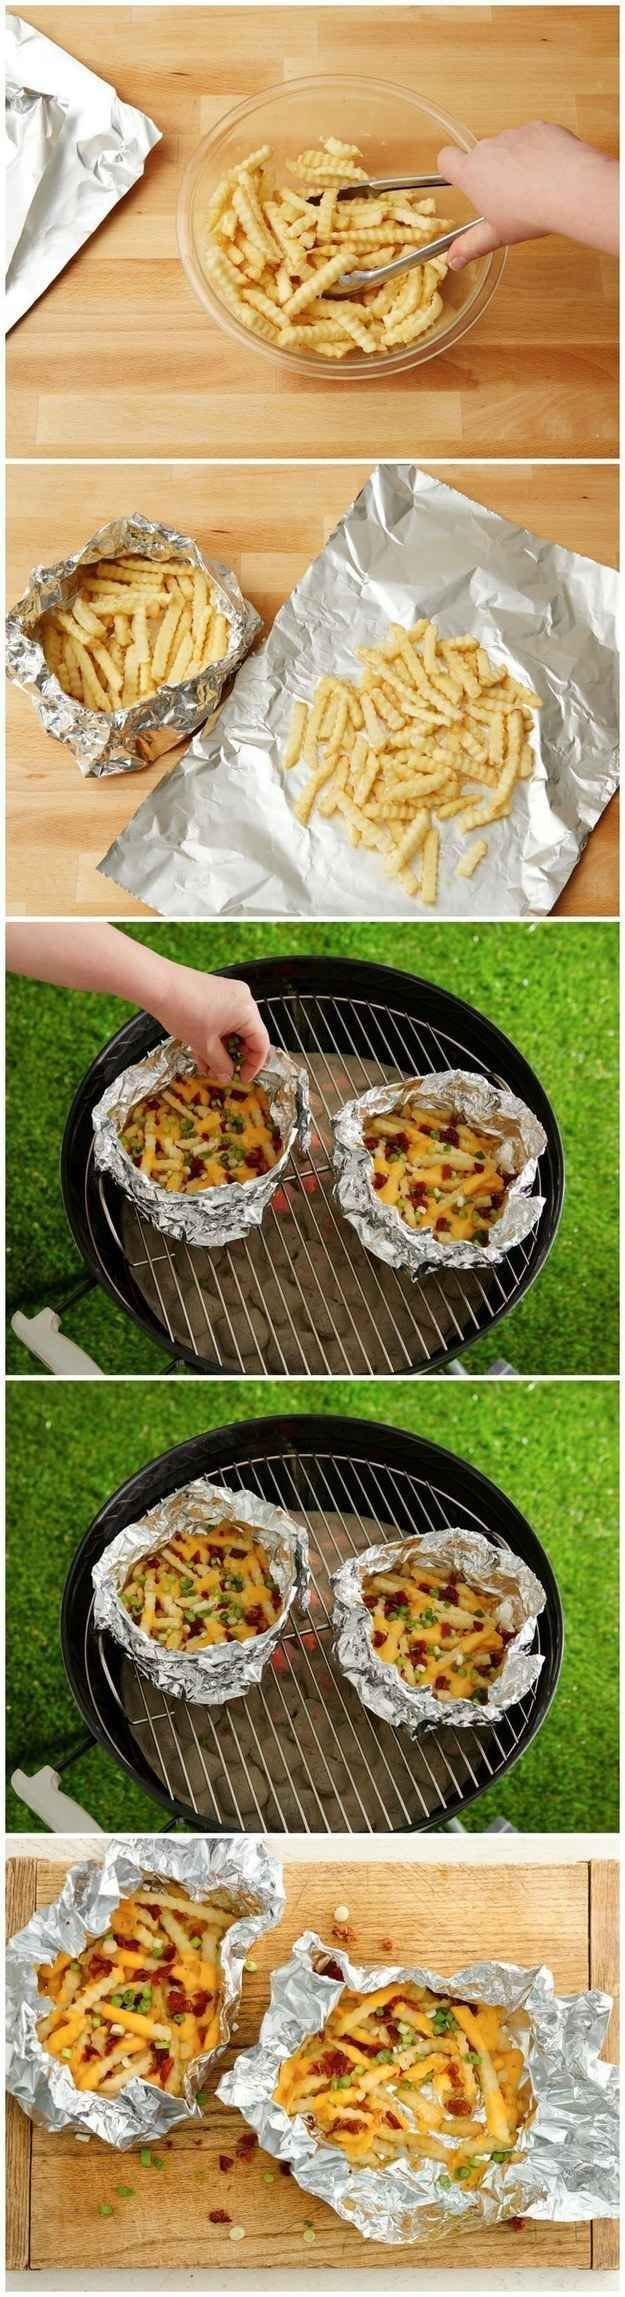 Foil-Pack Cheesy Fries                                                                                                                                                                                 More